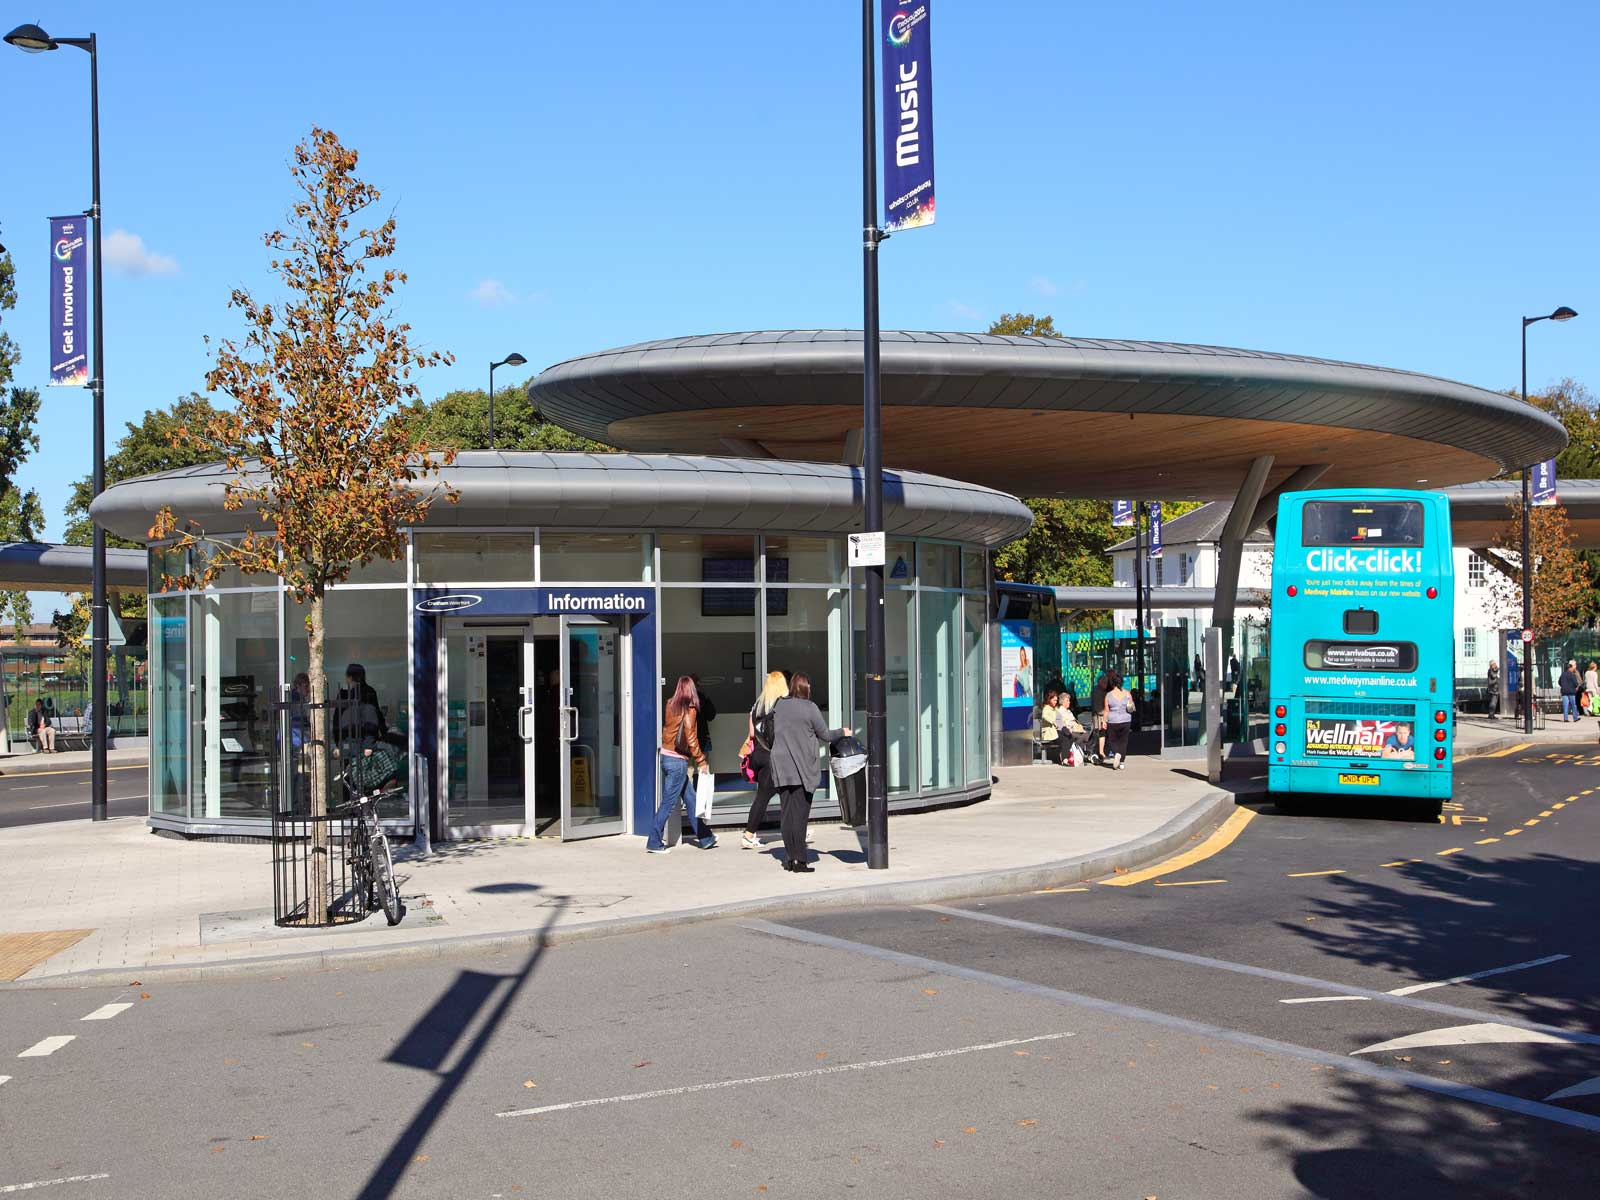 chatham waterfront bus station